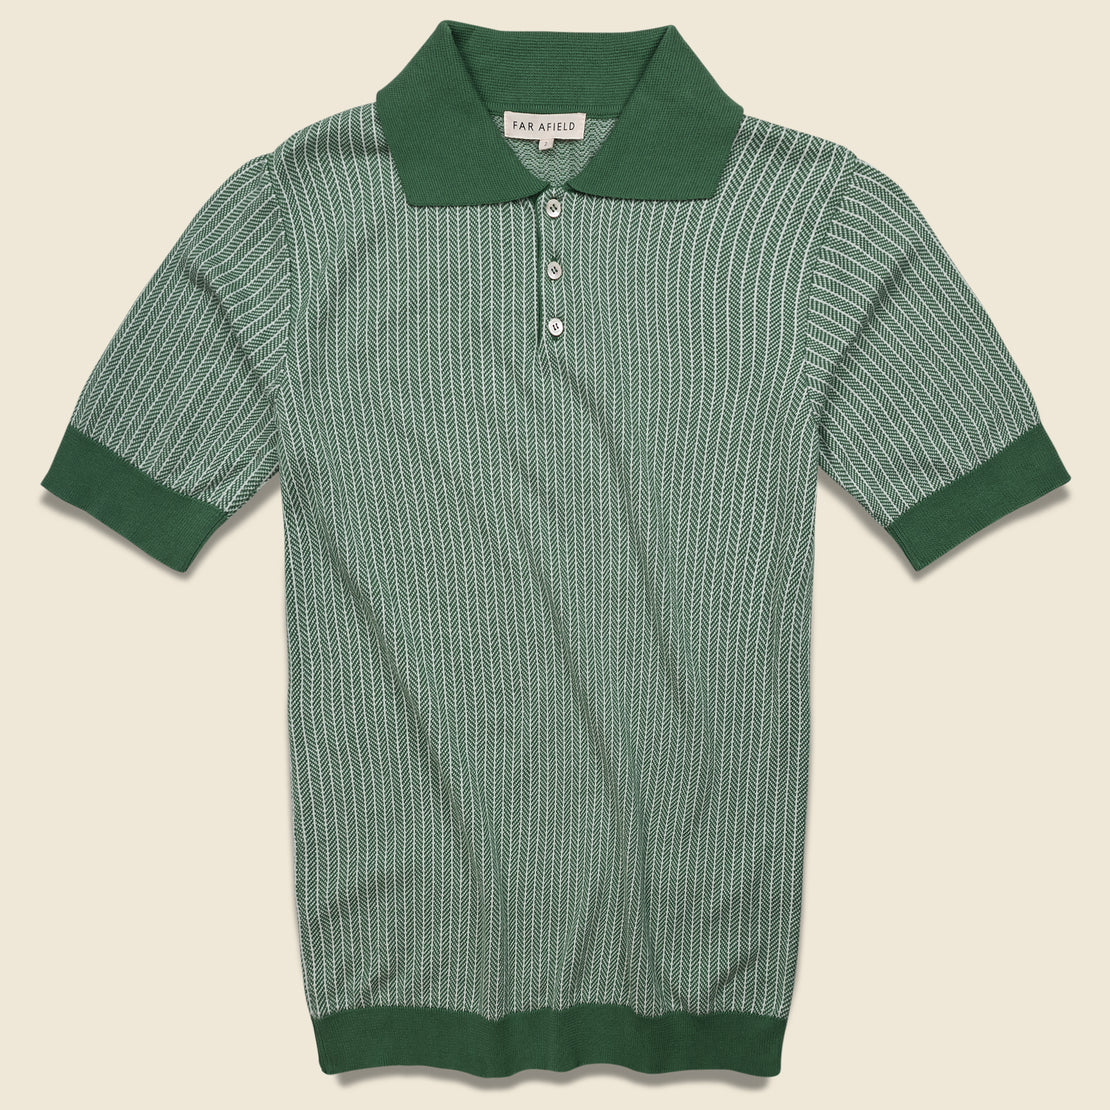 Far Afield Blakey Knit Polo - Green